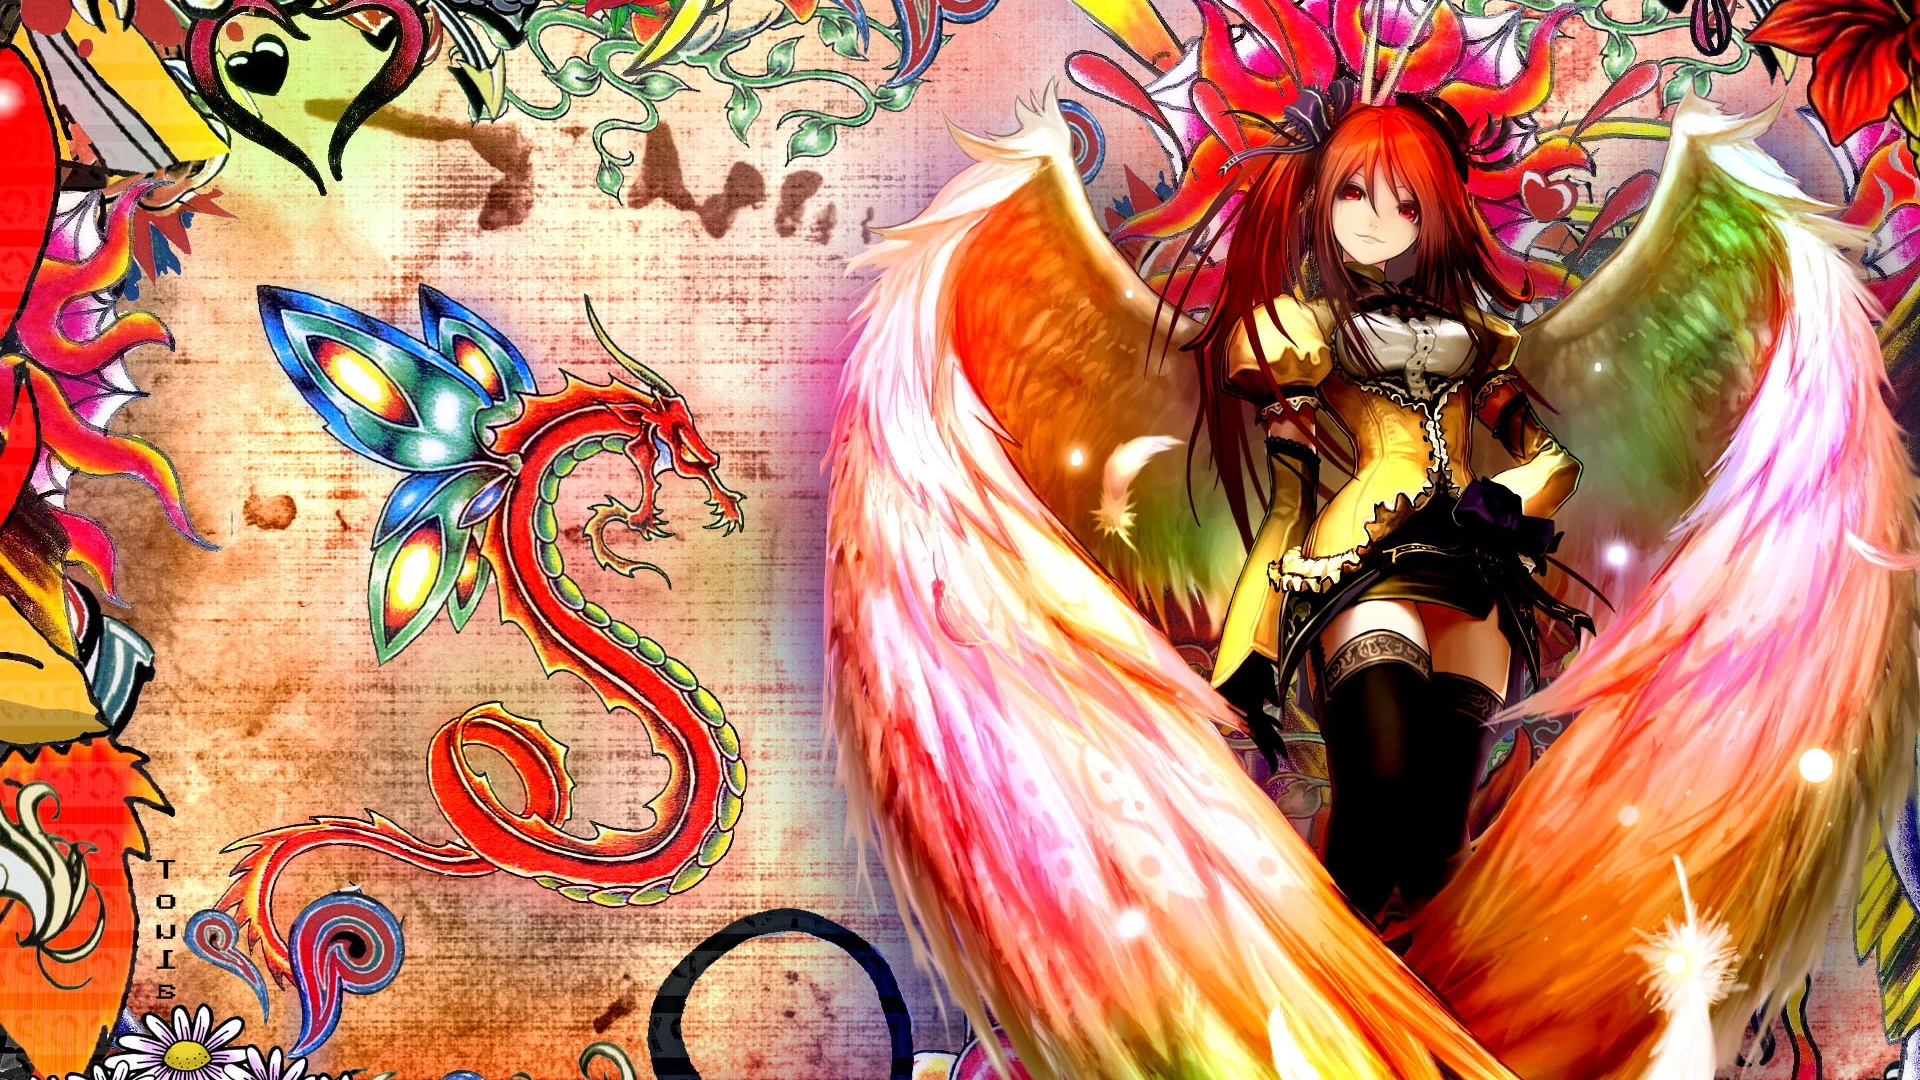 Description: The Wallpaper above is Winged anime girl Wallpaper in Resolution 1920x1080. Choose your Resolution and Download Winged anime girl Wallpaper